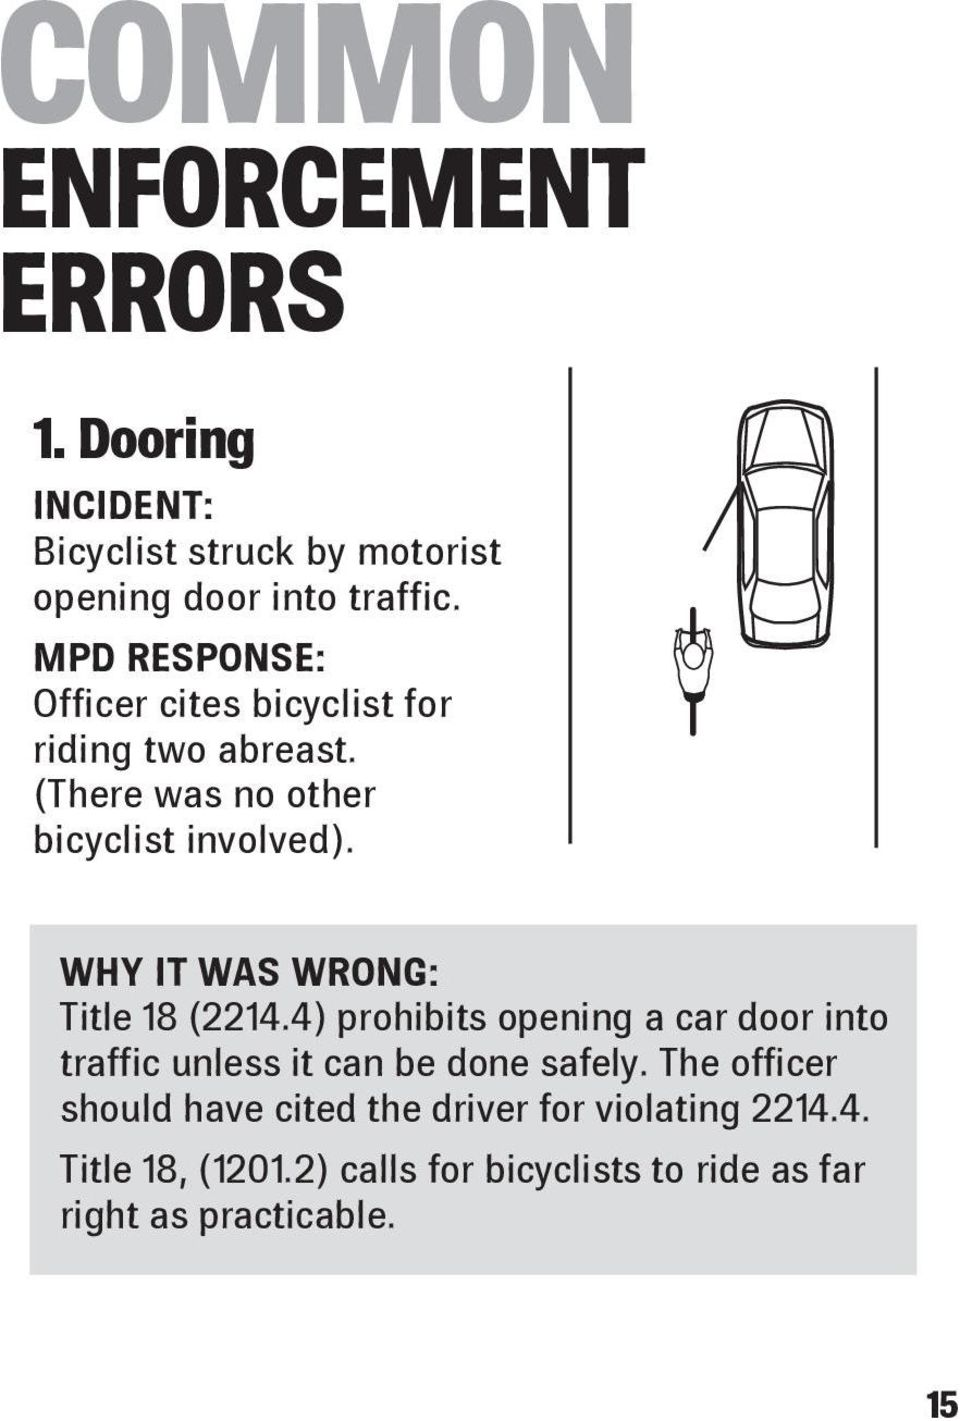 WHY IT WAS WRONG: Title 18 (2214.4) prohibits opening a car door into traffic unless it can be done safely.